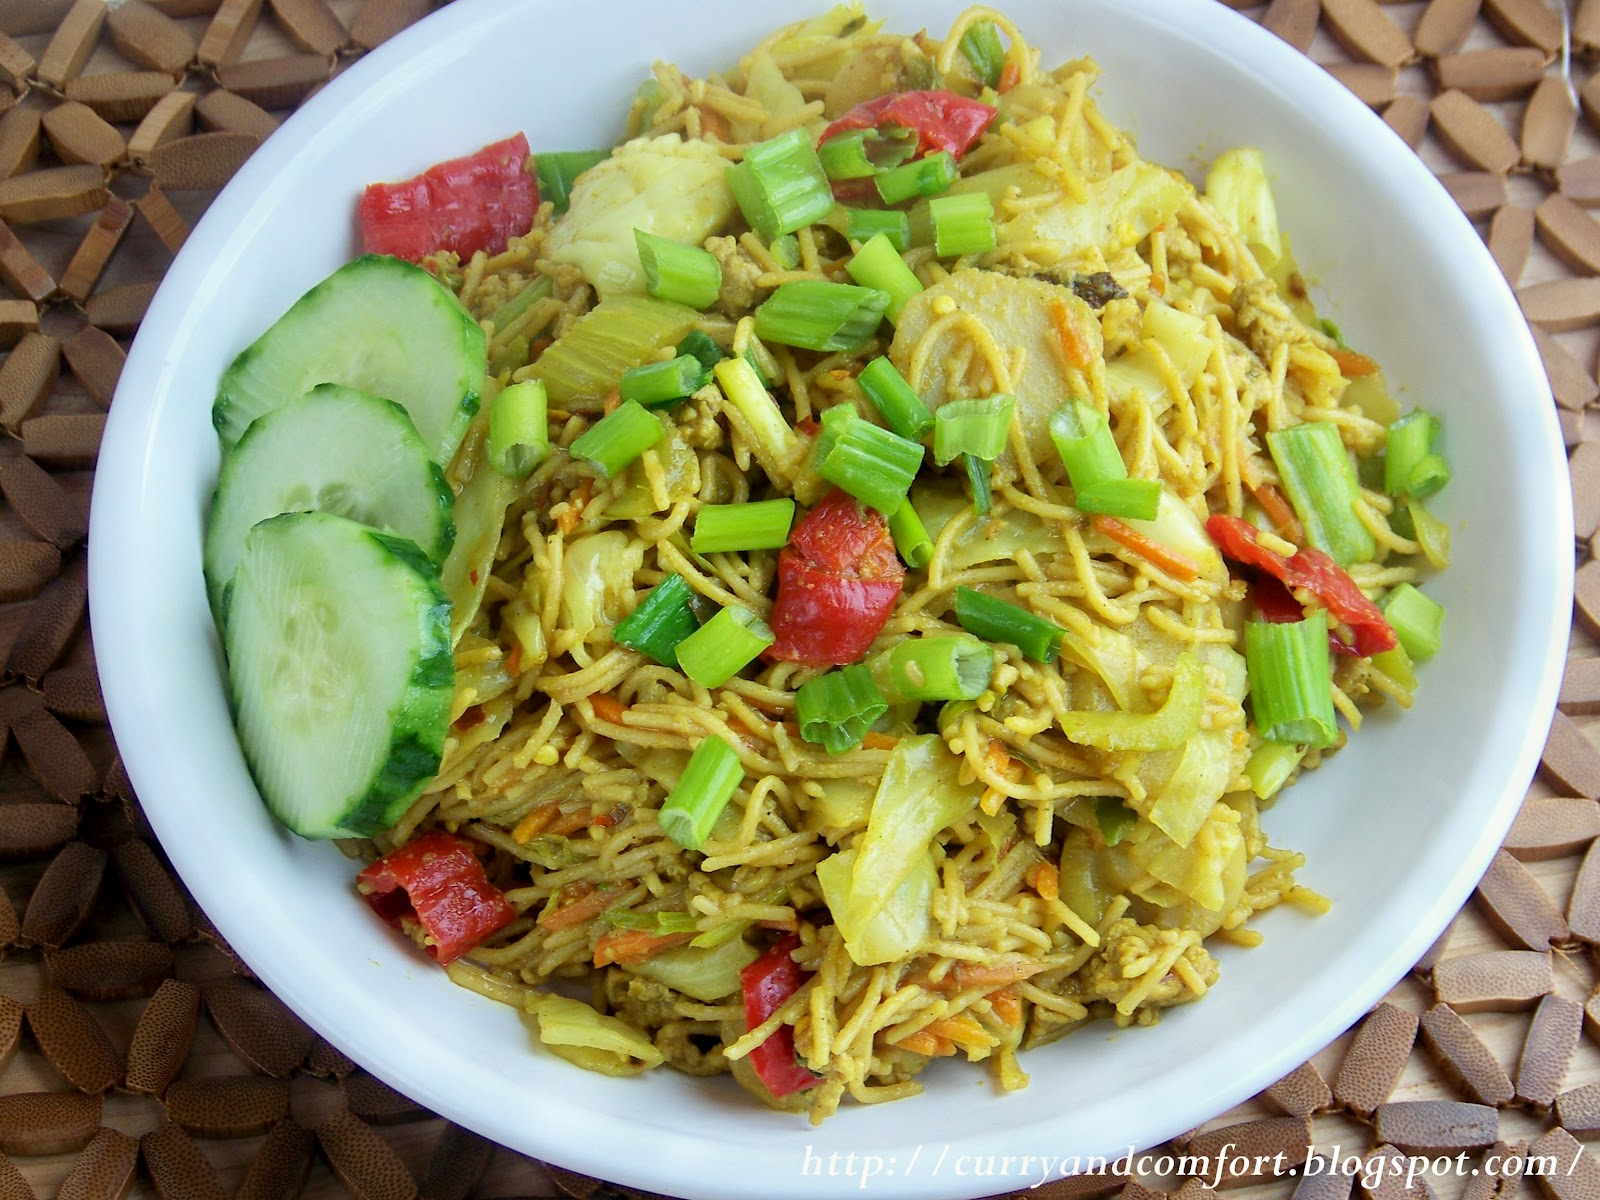 Curried Noodles with Vegetables